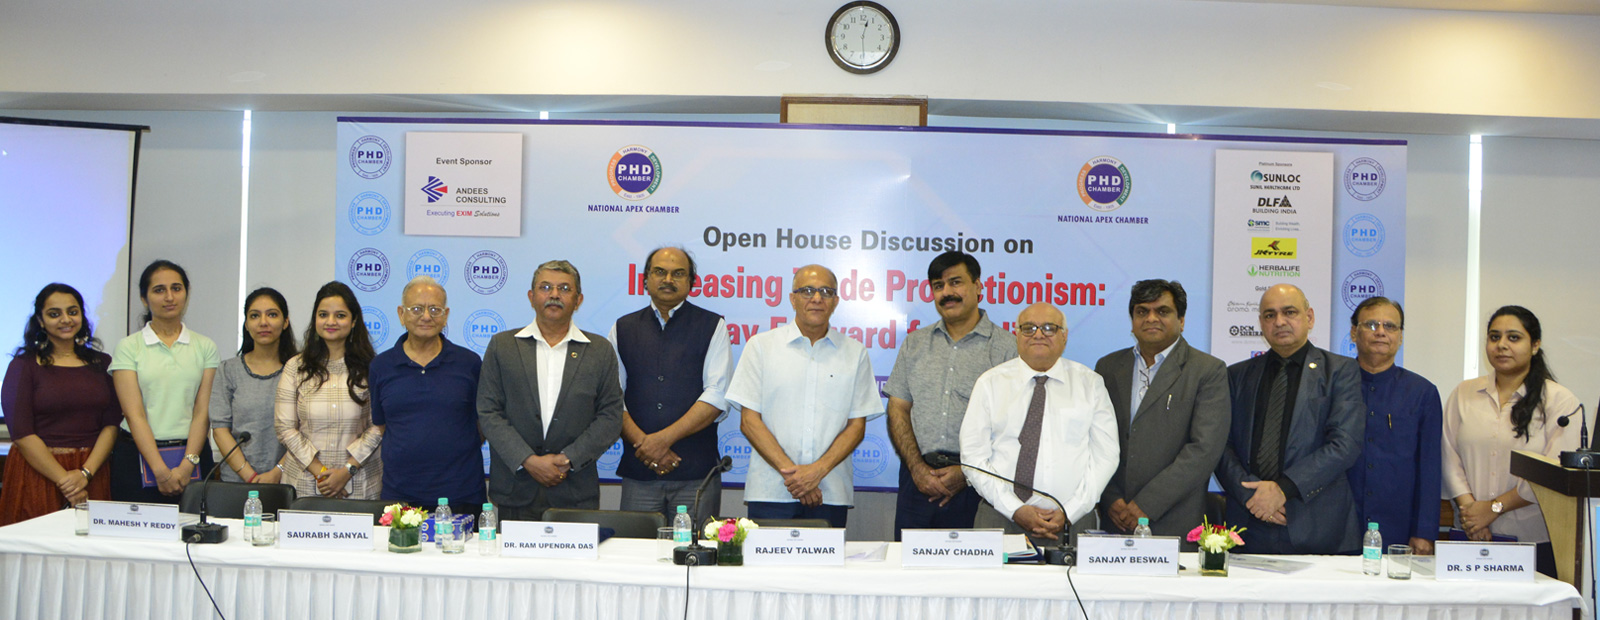 Open House Discussion on Increasing Trade Protectionism: Way Forward for India